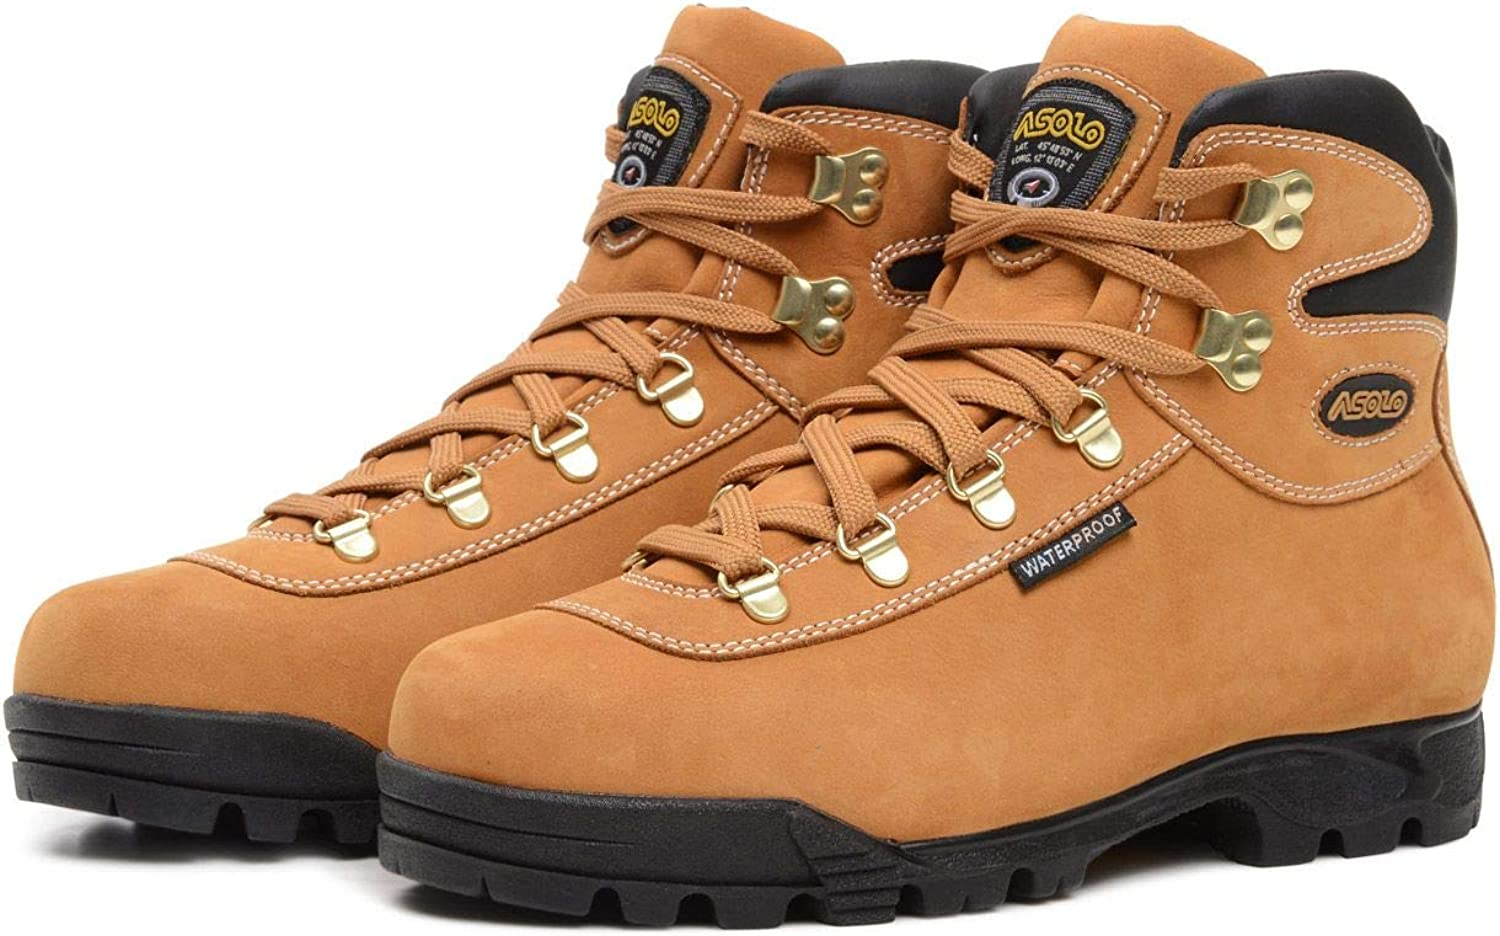 Asolo Sunrise Hiking Boots For Men